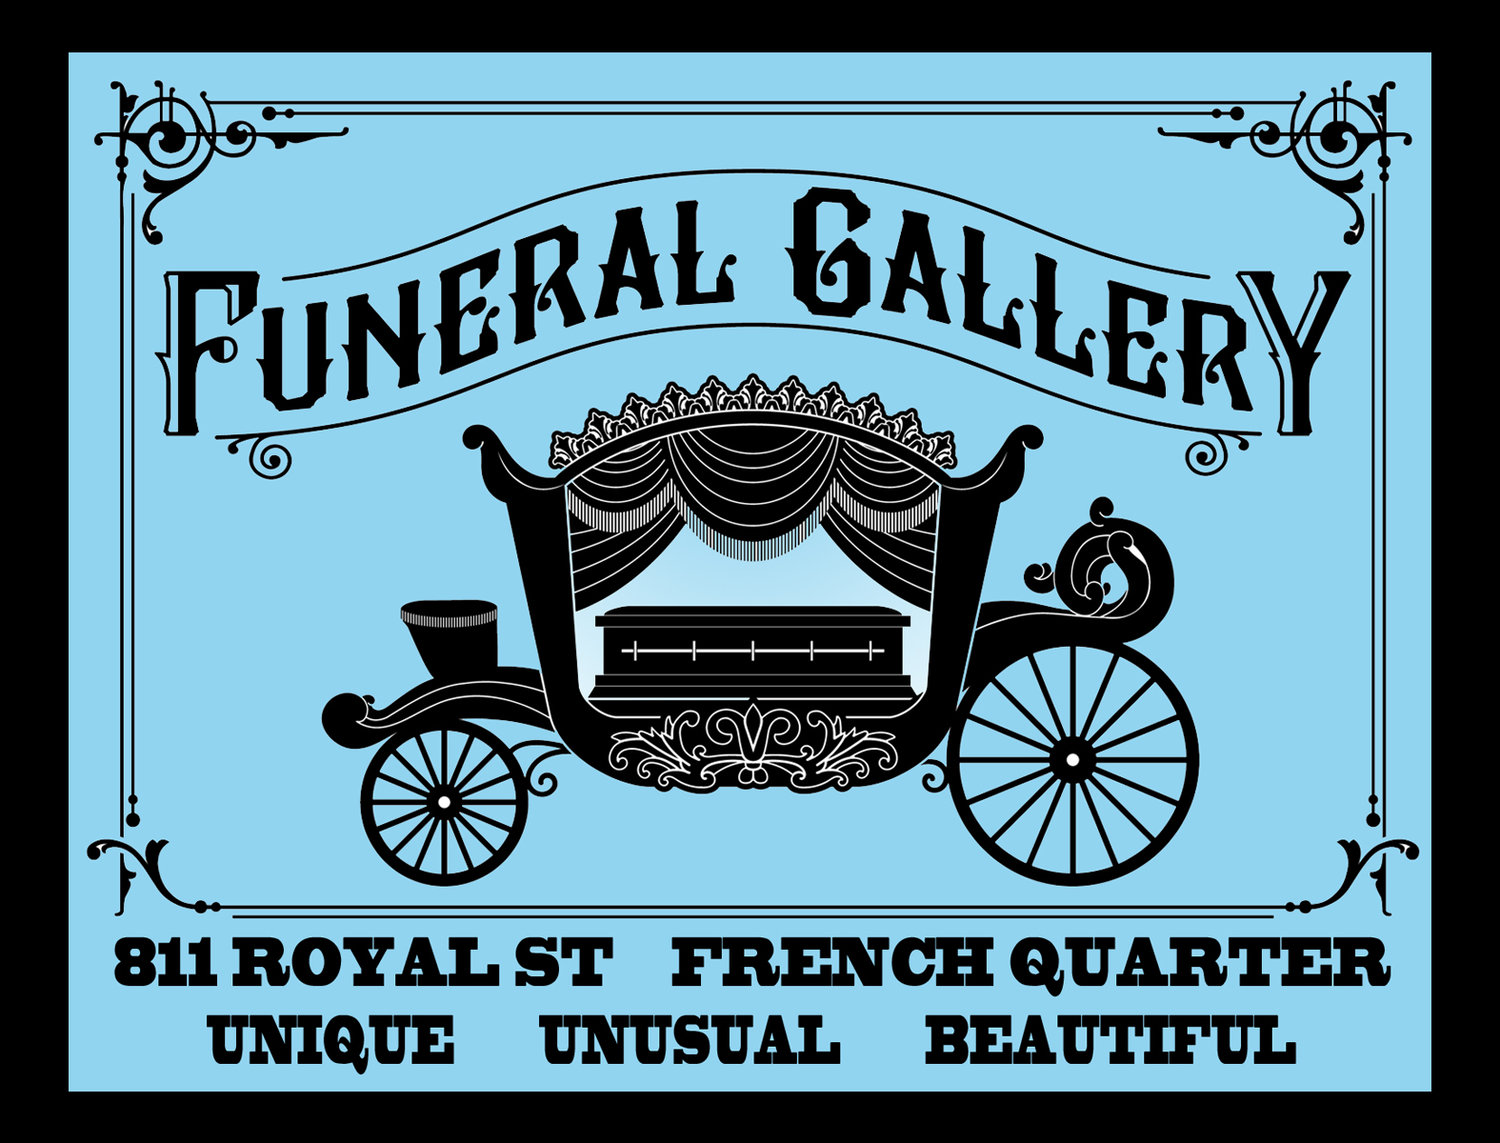 Funeral Gallery